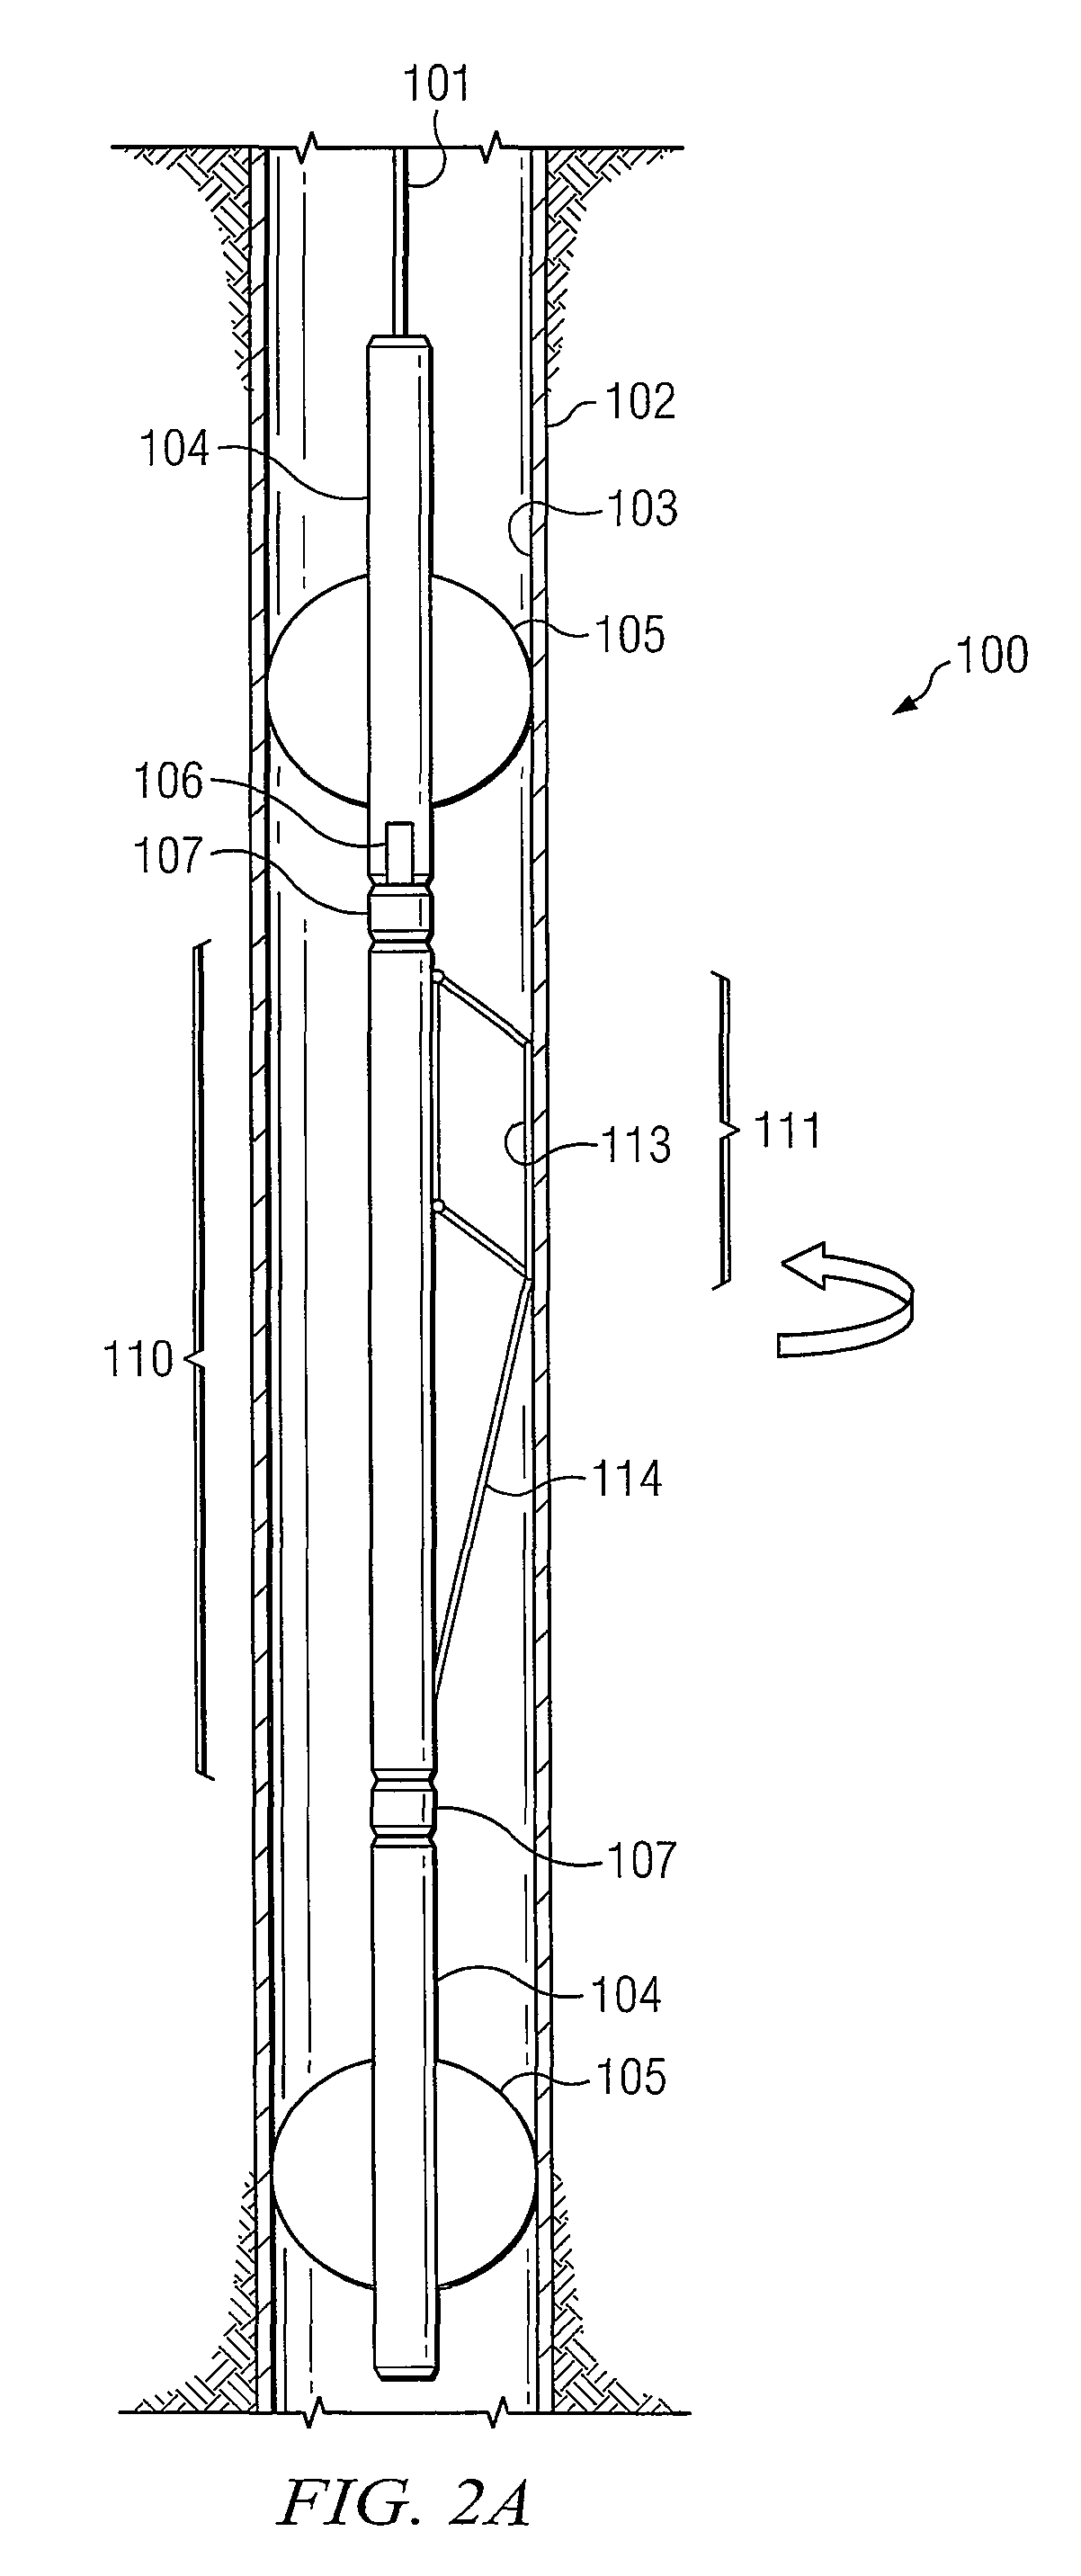 the measurement of fluid flow Ca2136175a1 - method and apparatus for the measurement of the mass flowrates of fluid components in a multiphase slug flow - google patents.